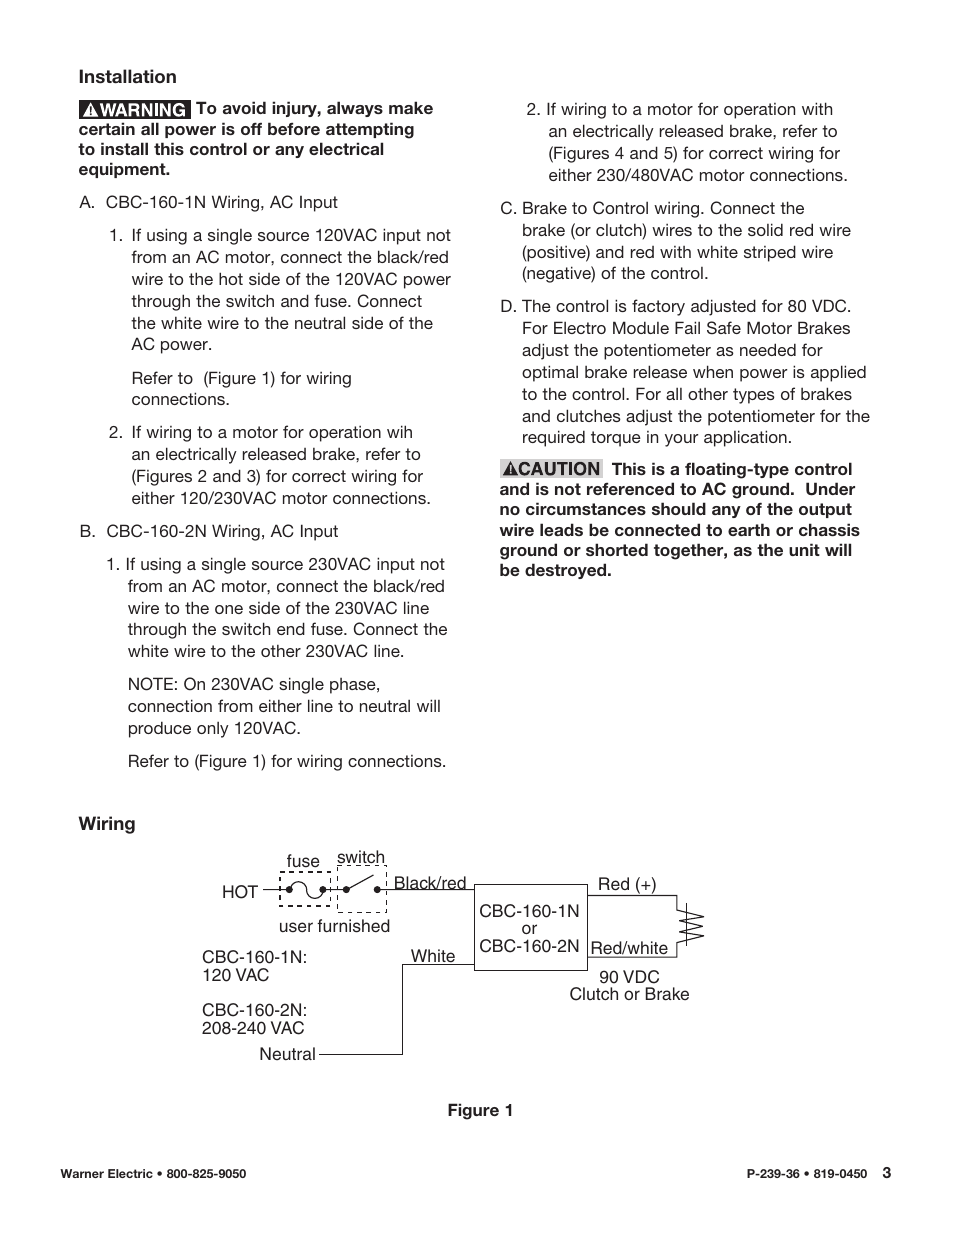 hight resolution of warner electric cbc 160 2n user manual page 3 6 also for cbc 160 1n